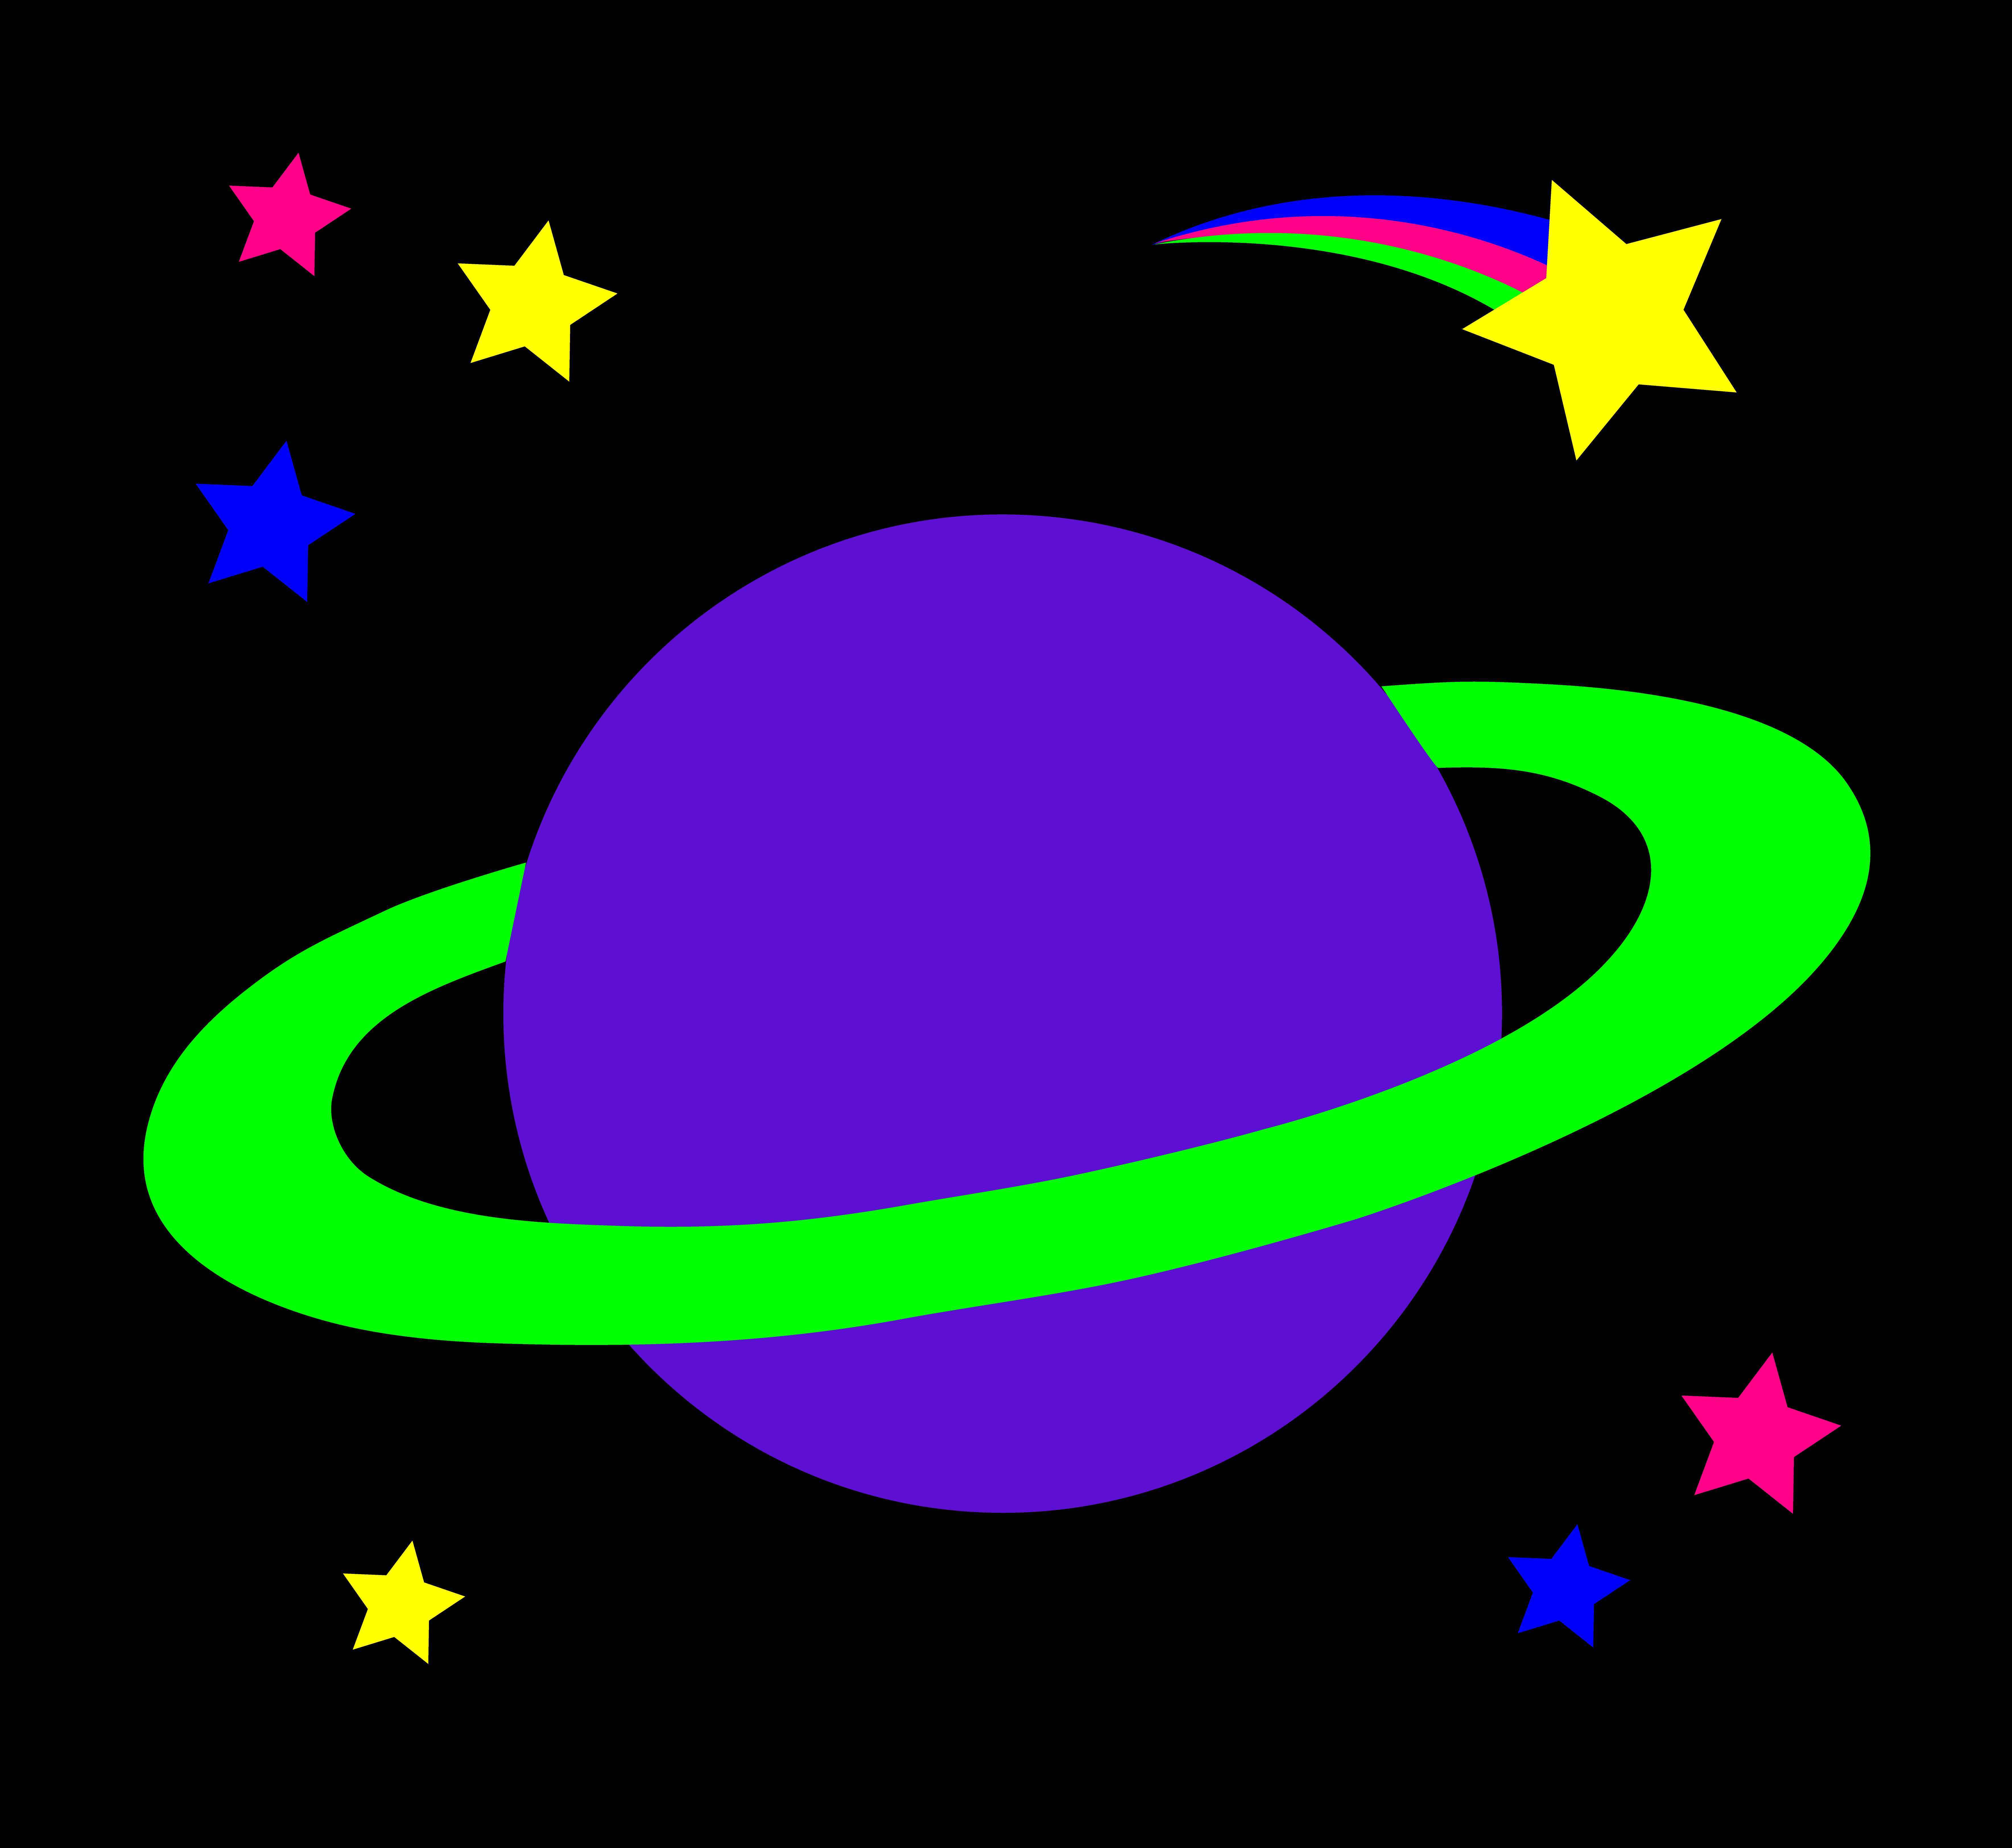 Planeten clipart teacher. Planet images ringed with